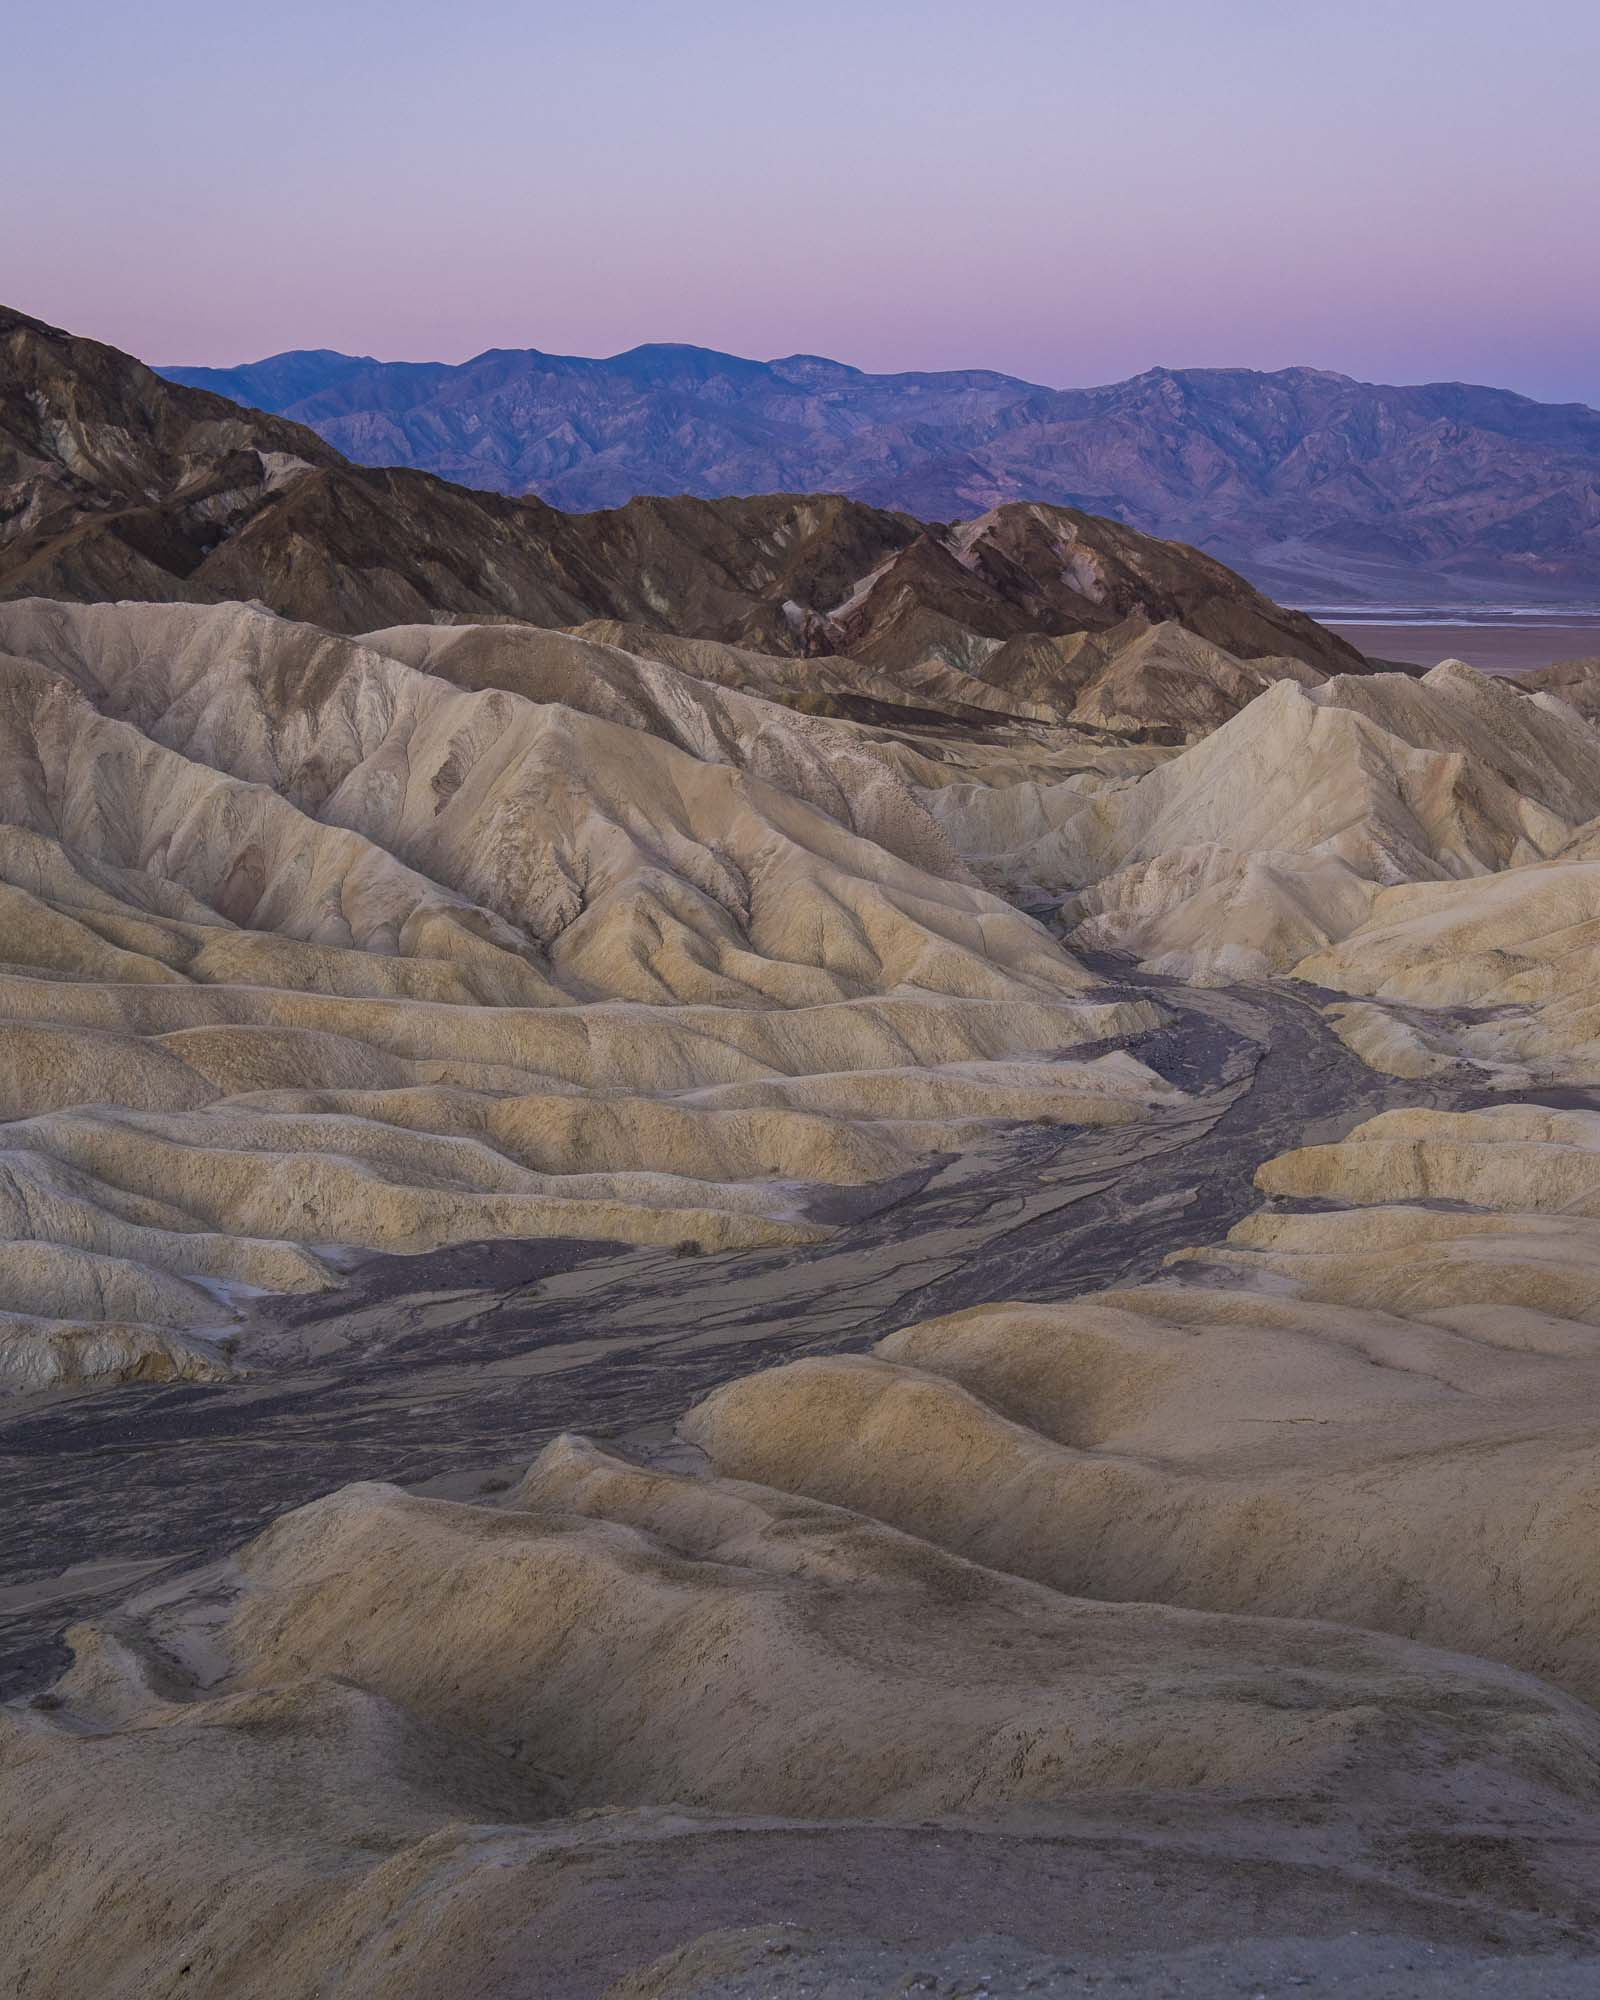 the view of distant mountains from Zabriskie point in Death valley california for dirt road travels